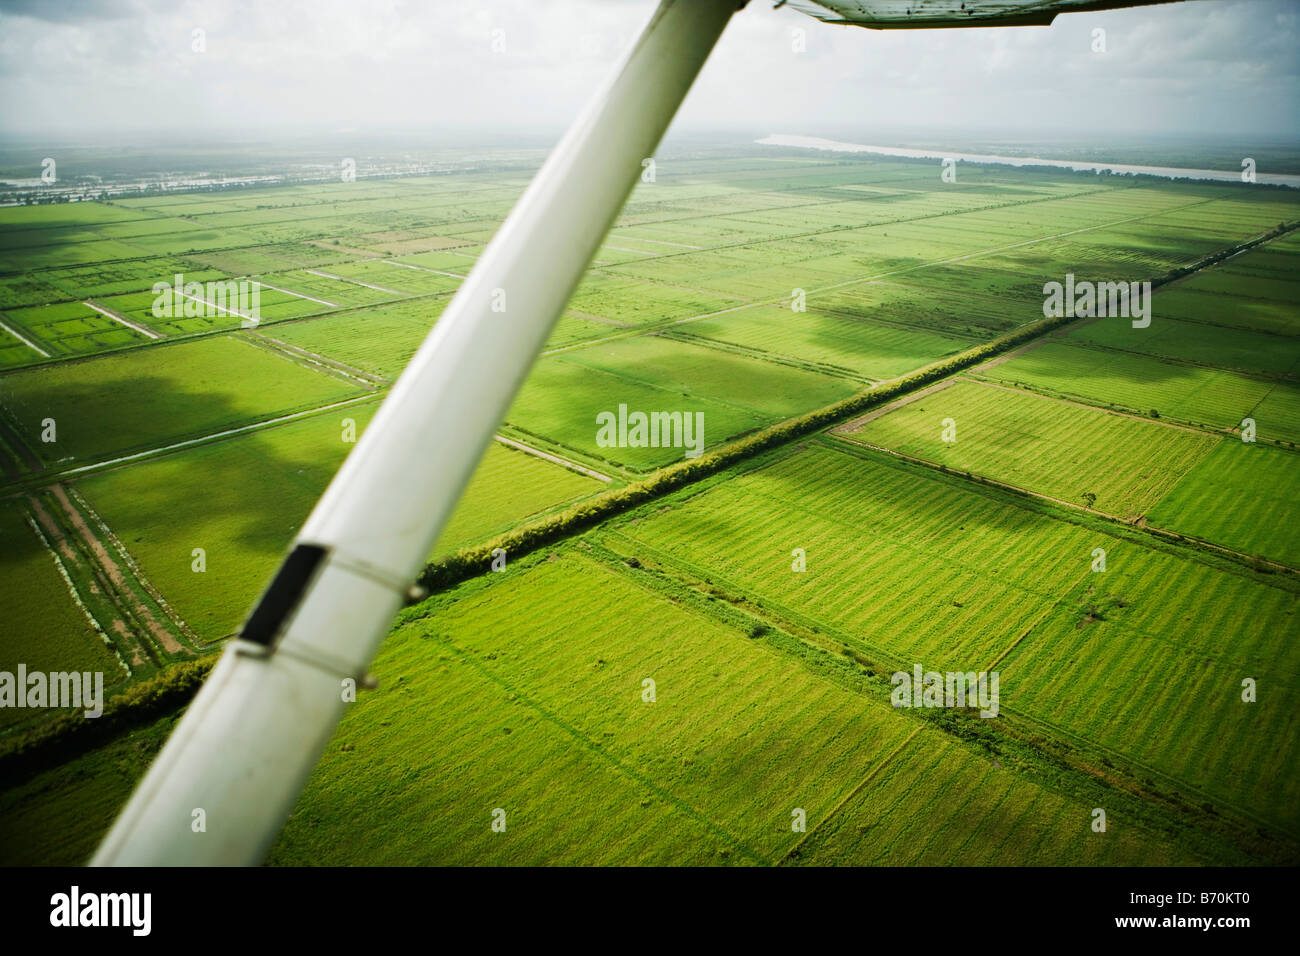 Suriname, Paramaribo, Aerial of former plantations. Now undeveloped. - Stock Image